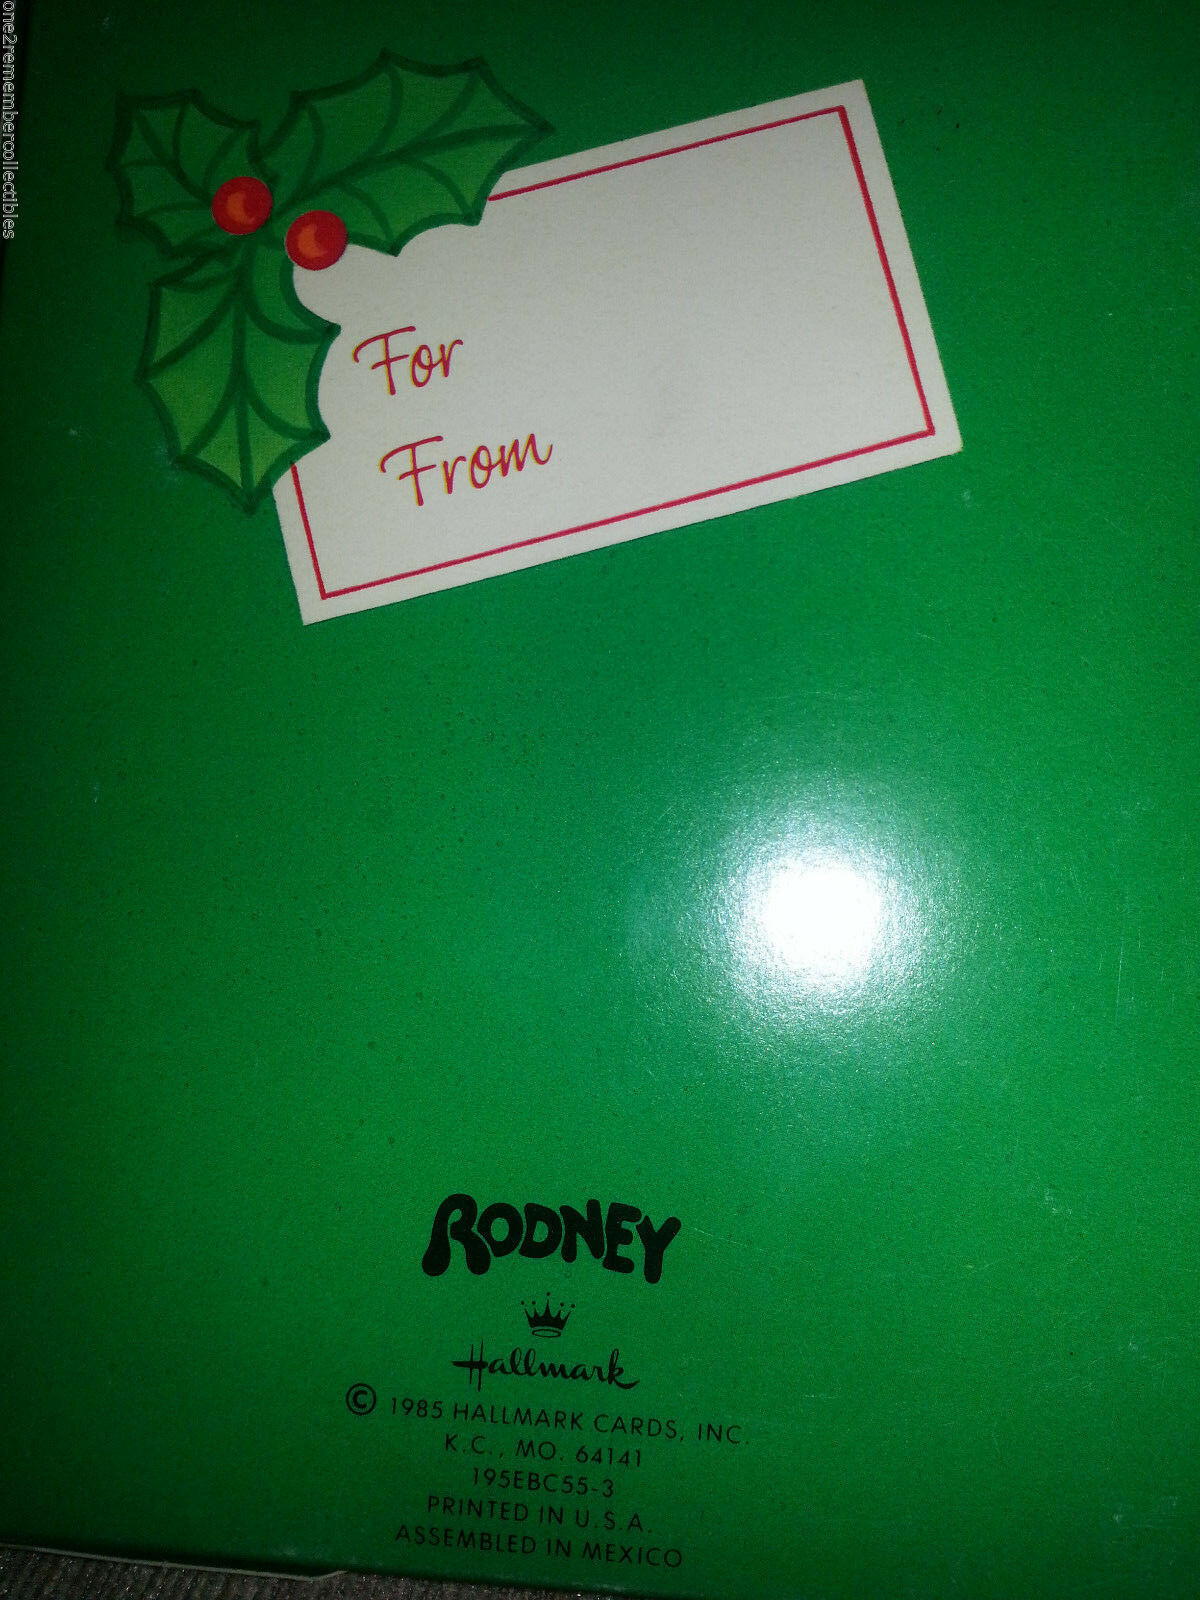 10 of 11 hallmark 1985 money holder rodney reindeer christmas card box pop up vintage new - Christmas Card Money Holder